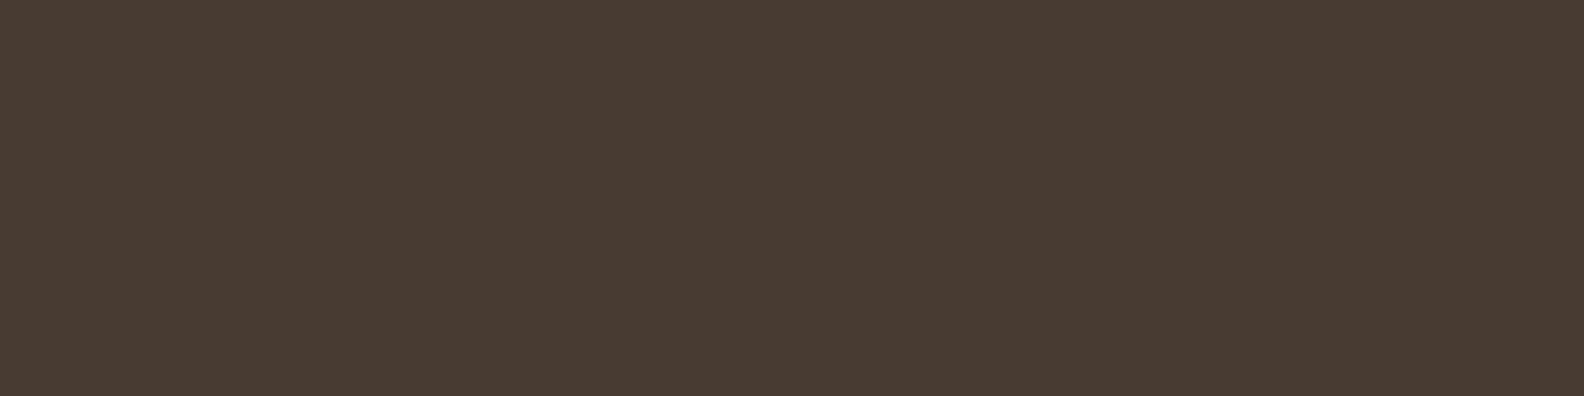 1584x396 Dark Taupe Solid Color Background